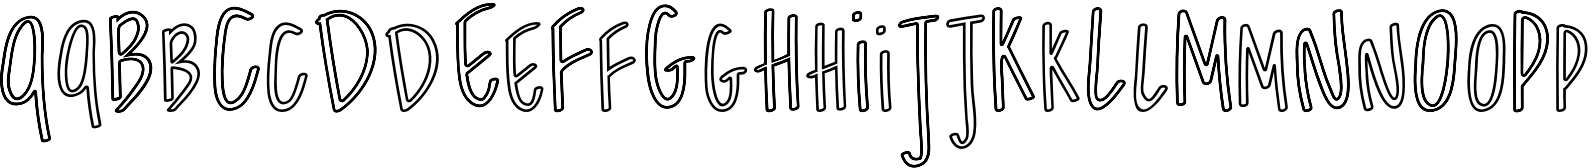 Shiraz Regular Outline Font